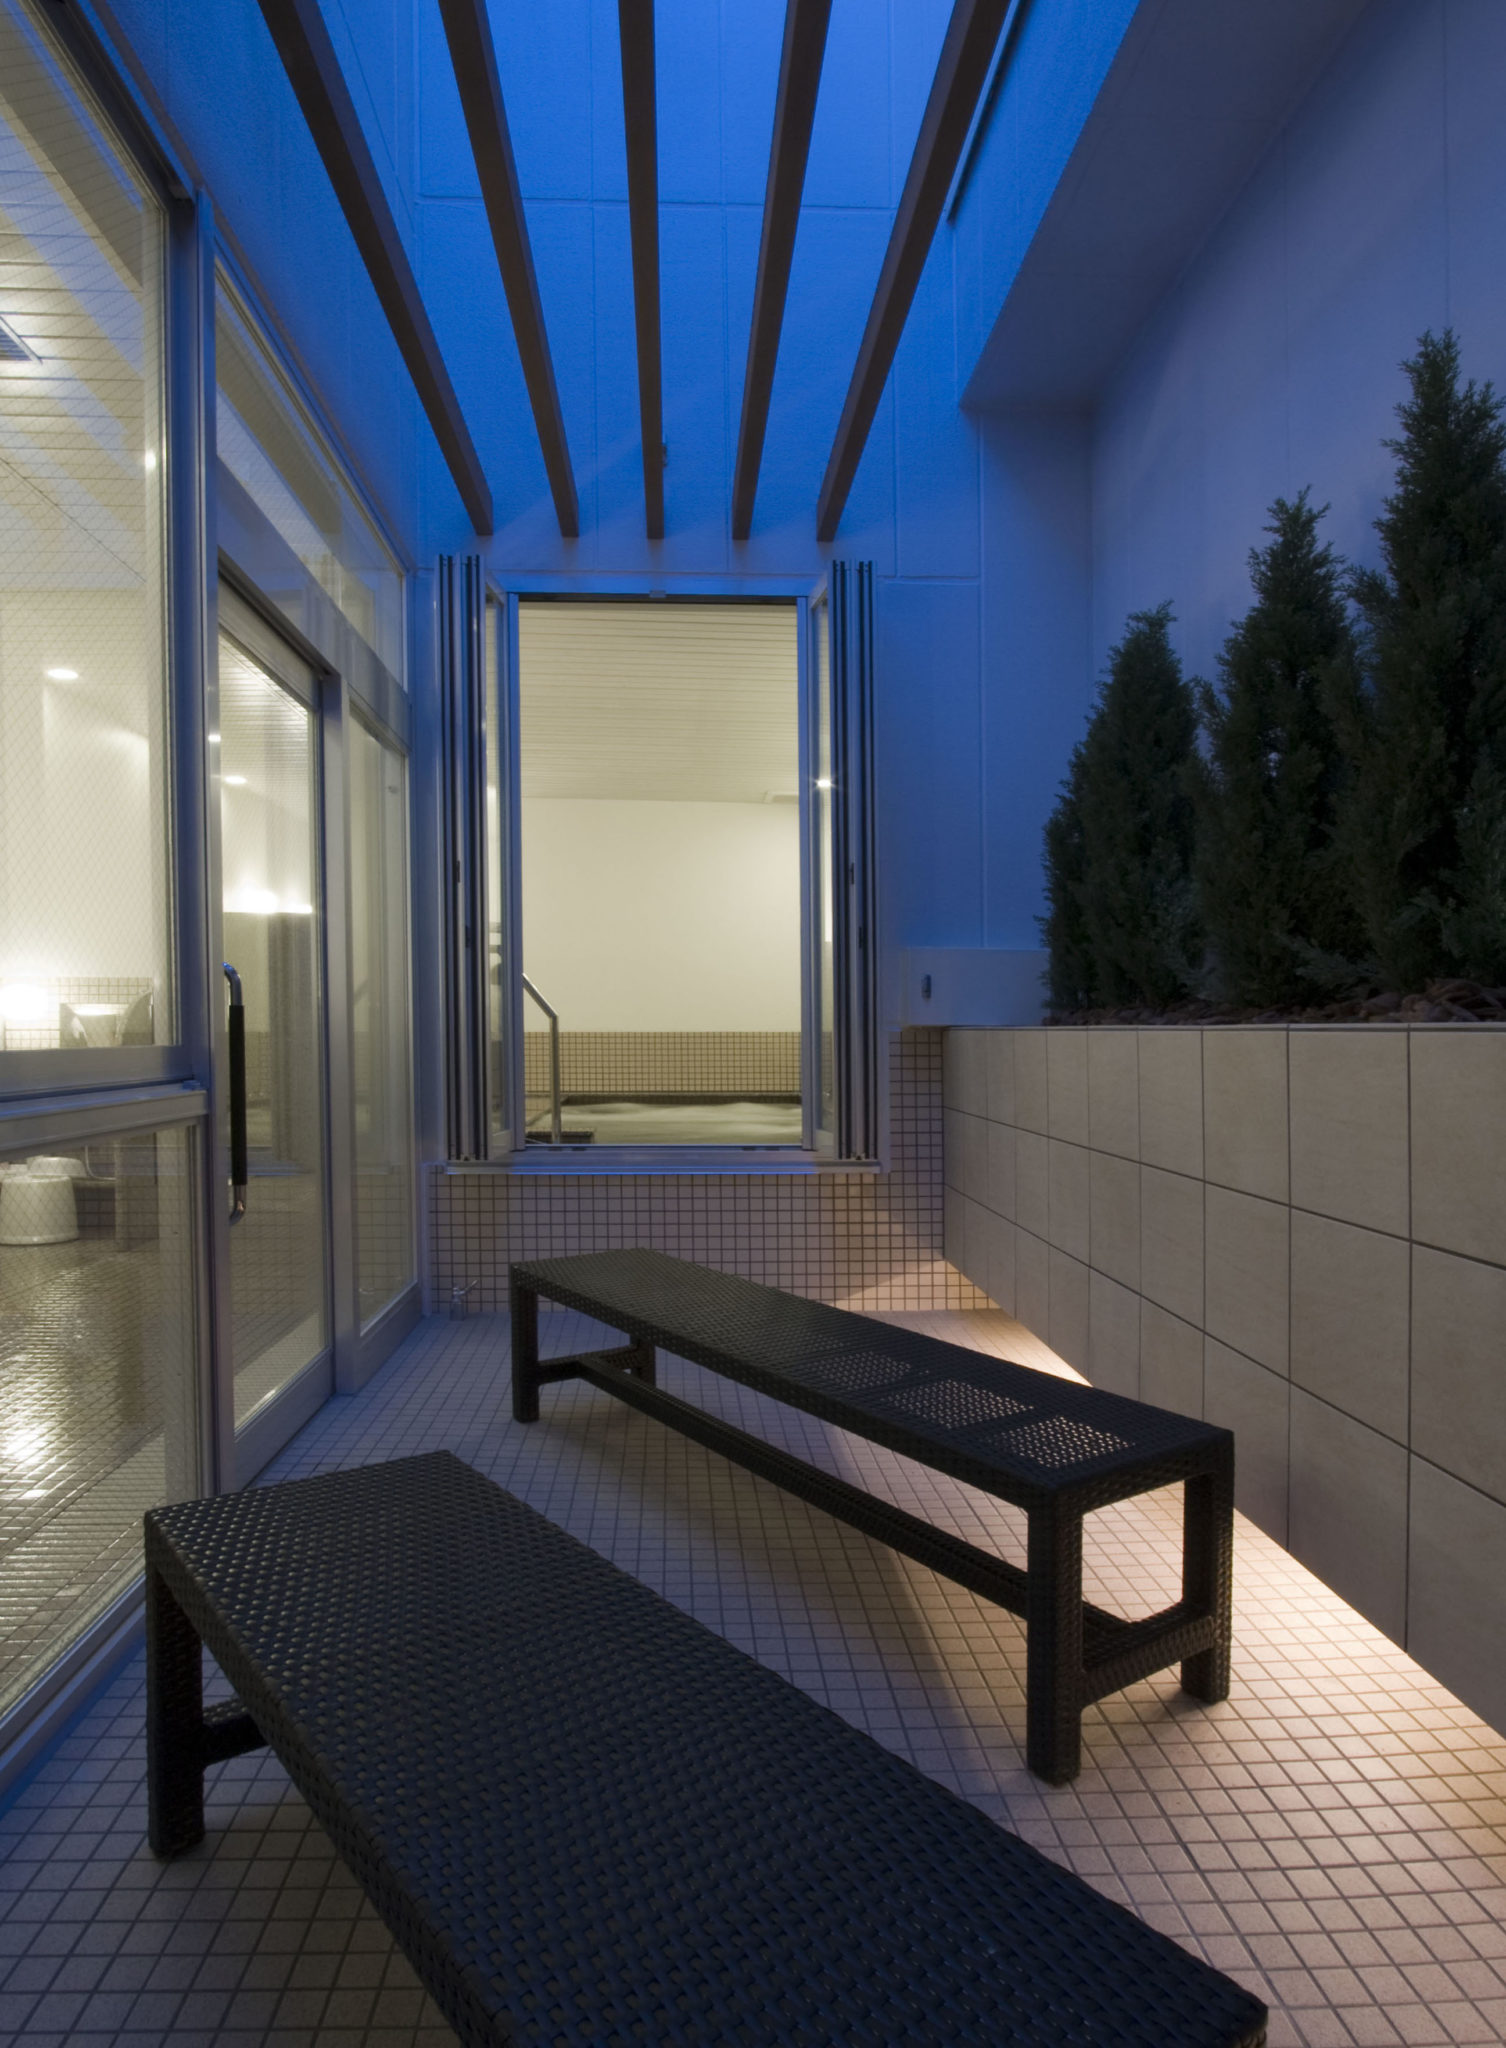 Outdoor seating and spa